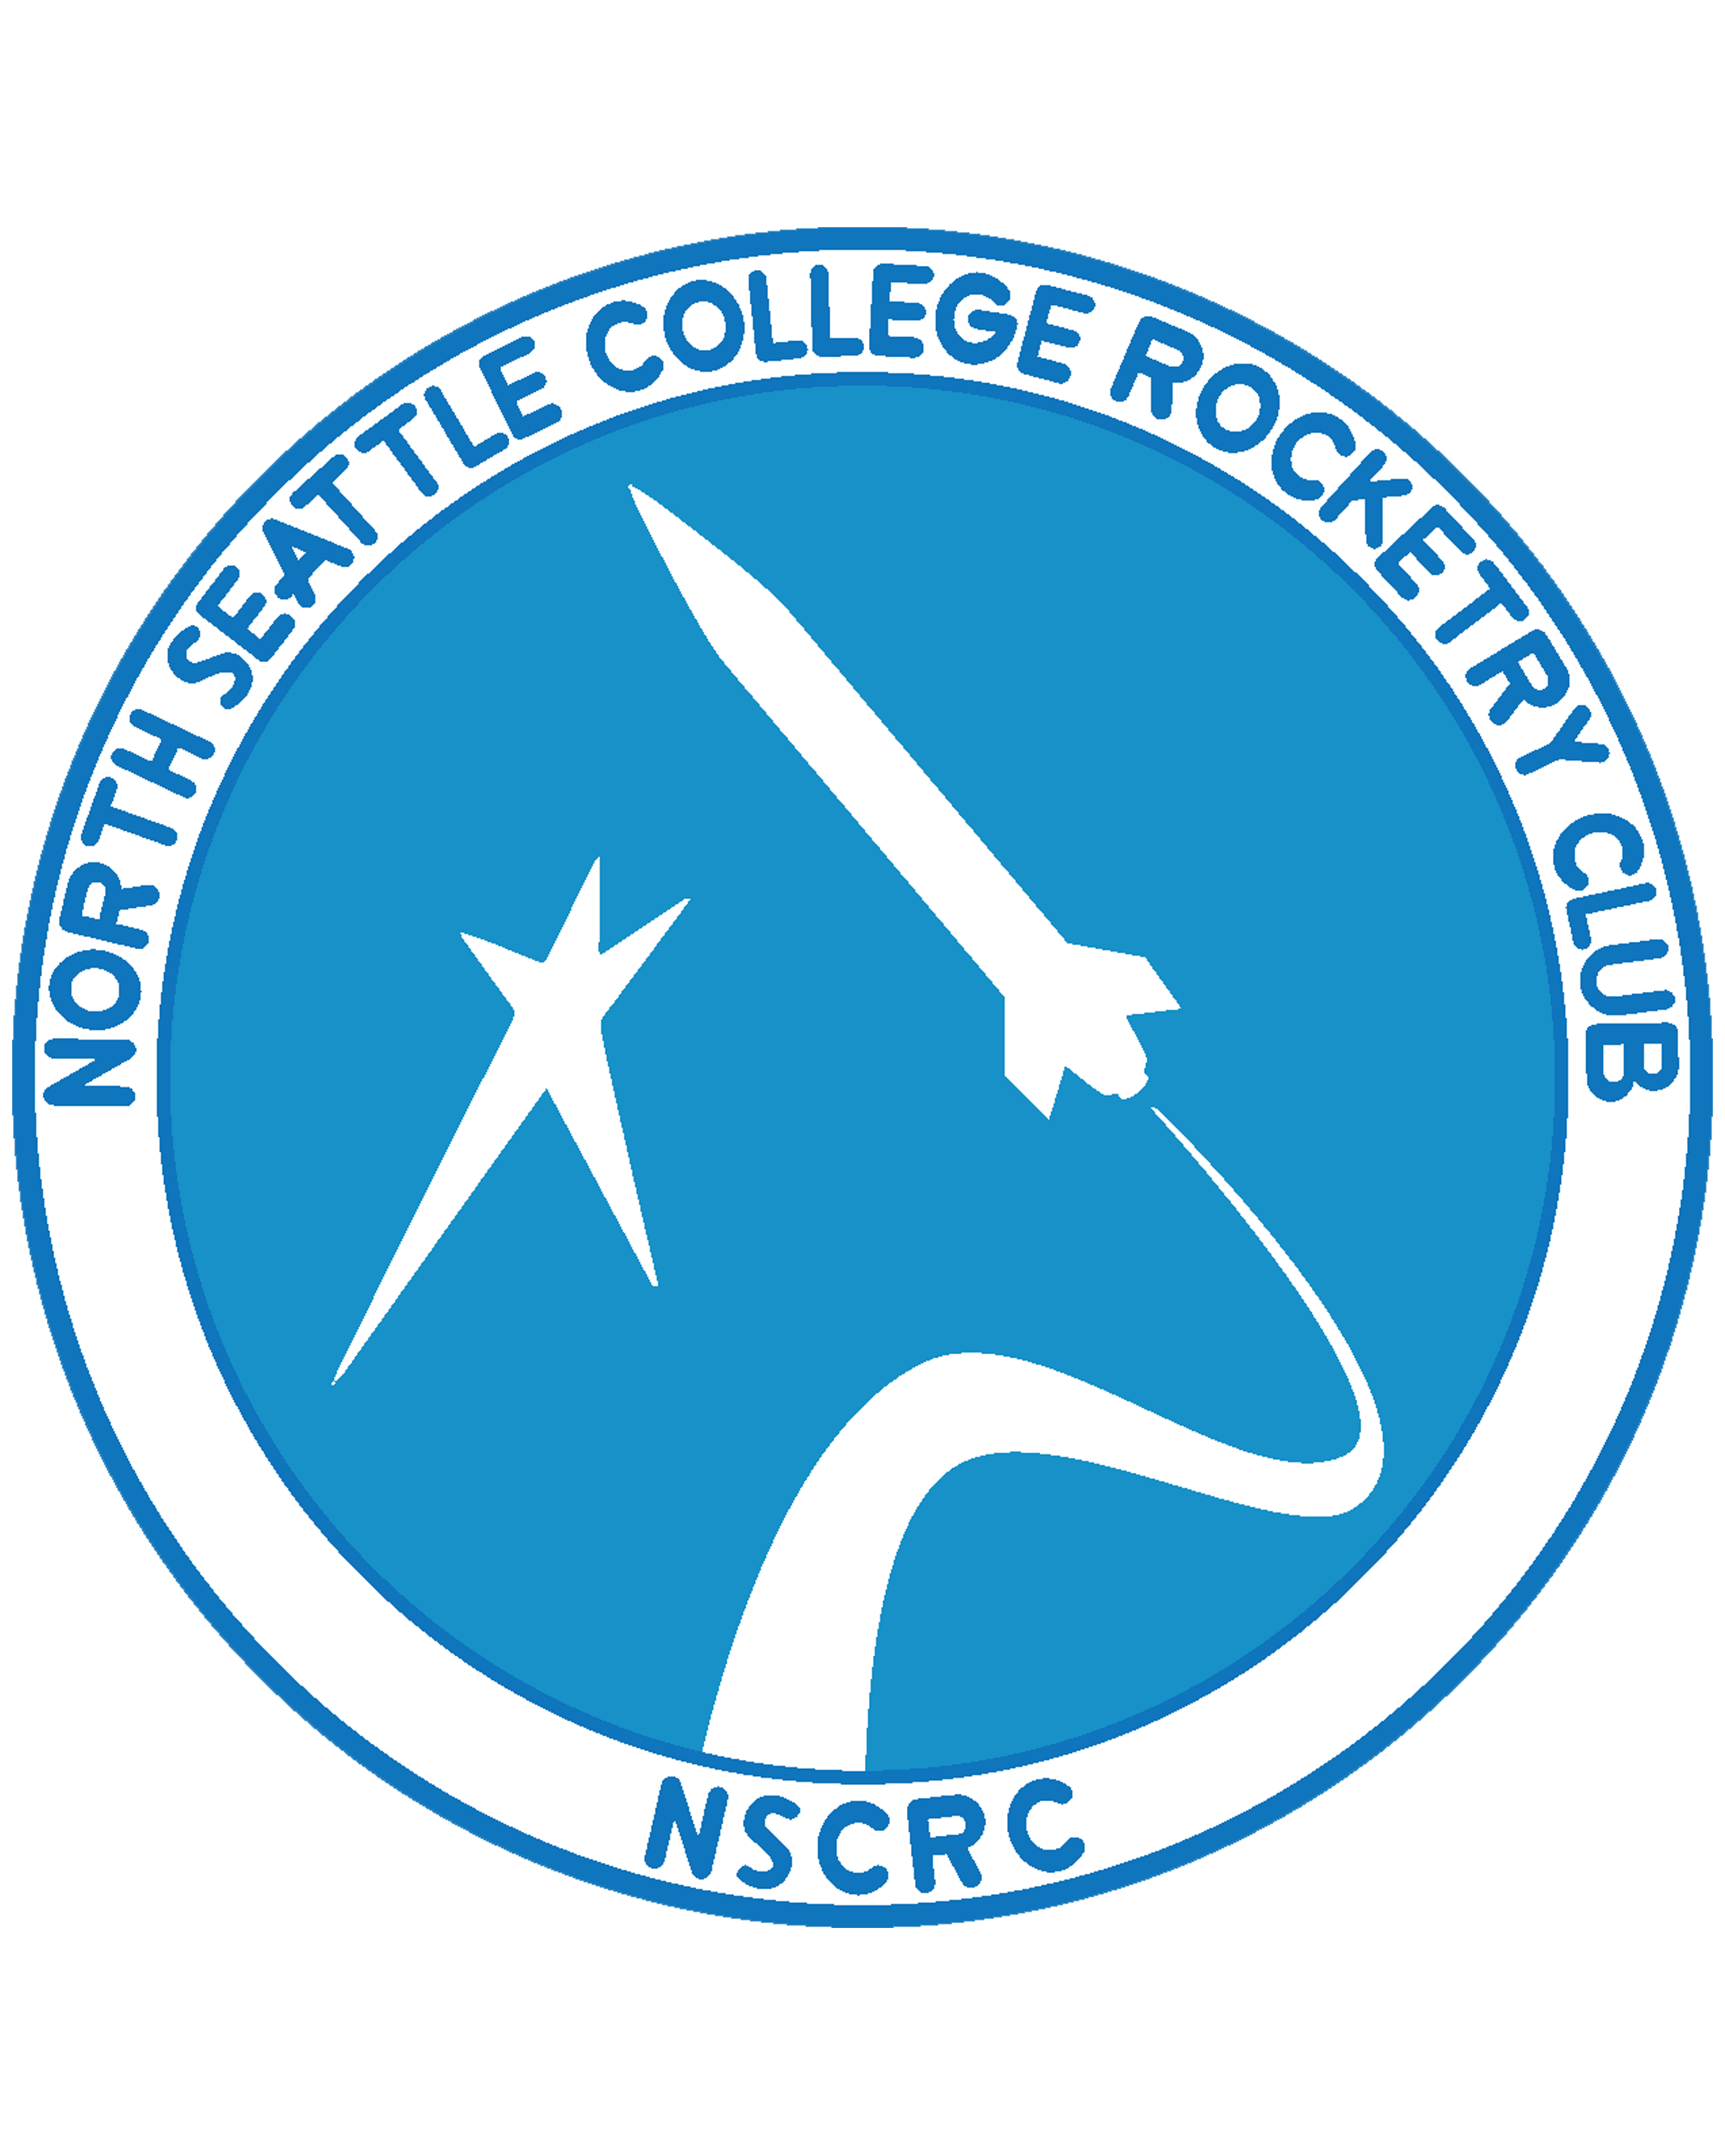 Have you ever wanted to build your own rocket? - The North Seattle College Rocket Club (NSCRC) was founded in 2014 by physics professor, Tracy Furutani. Since then, the NSCRC has competed three times in the Intercollegiate Rocketry and Engineering Competition (IREC) and certified over 35 students for Level 1, high-powered flight. We continually seek to increase the complexity and capability of our launch vehicles in order to compete in ever more demanding challenges. Come join the NSCRC and help us test the boundaries of vertical flight.